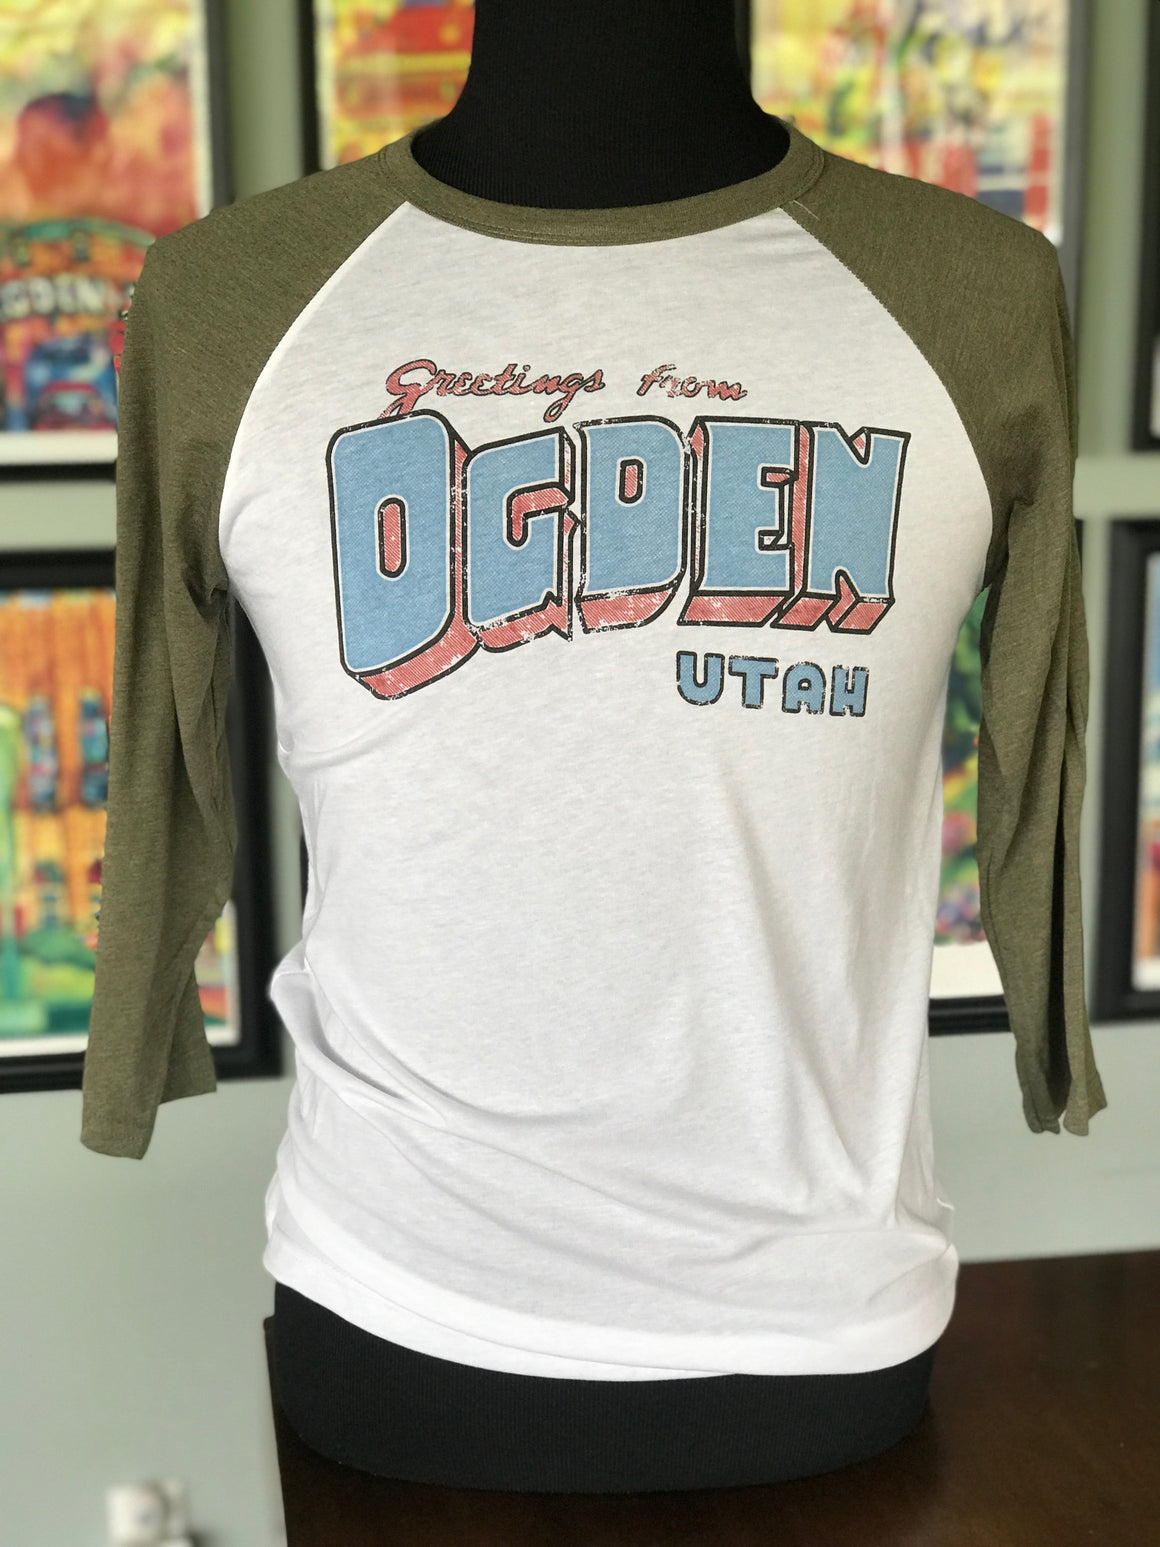 Greetings from Ogden Baseball Tee (Green Sleeve)